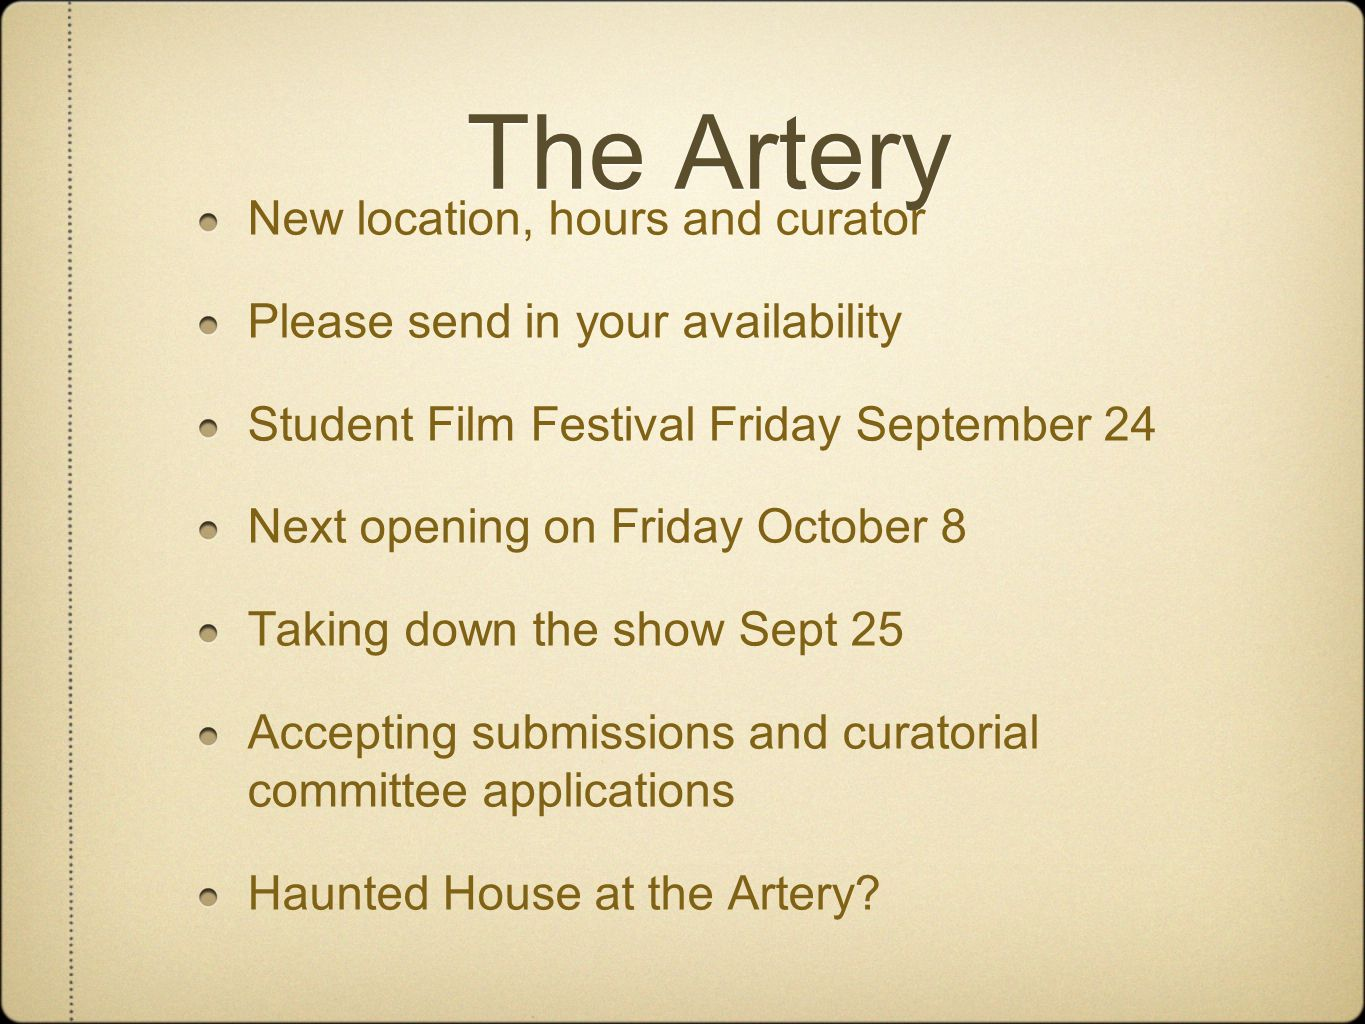 The Artery New location, hours and curator Please send in your availability Student Film Festival Friday September 24 Next opening on Friday October 8 Taking down the show Sept 25 Accepting submissions and curatorial committee applications Haunted House at the Artery?